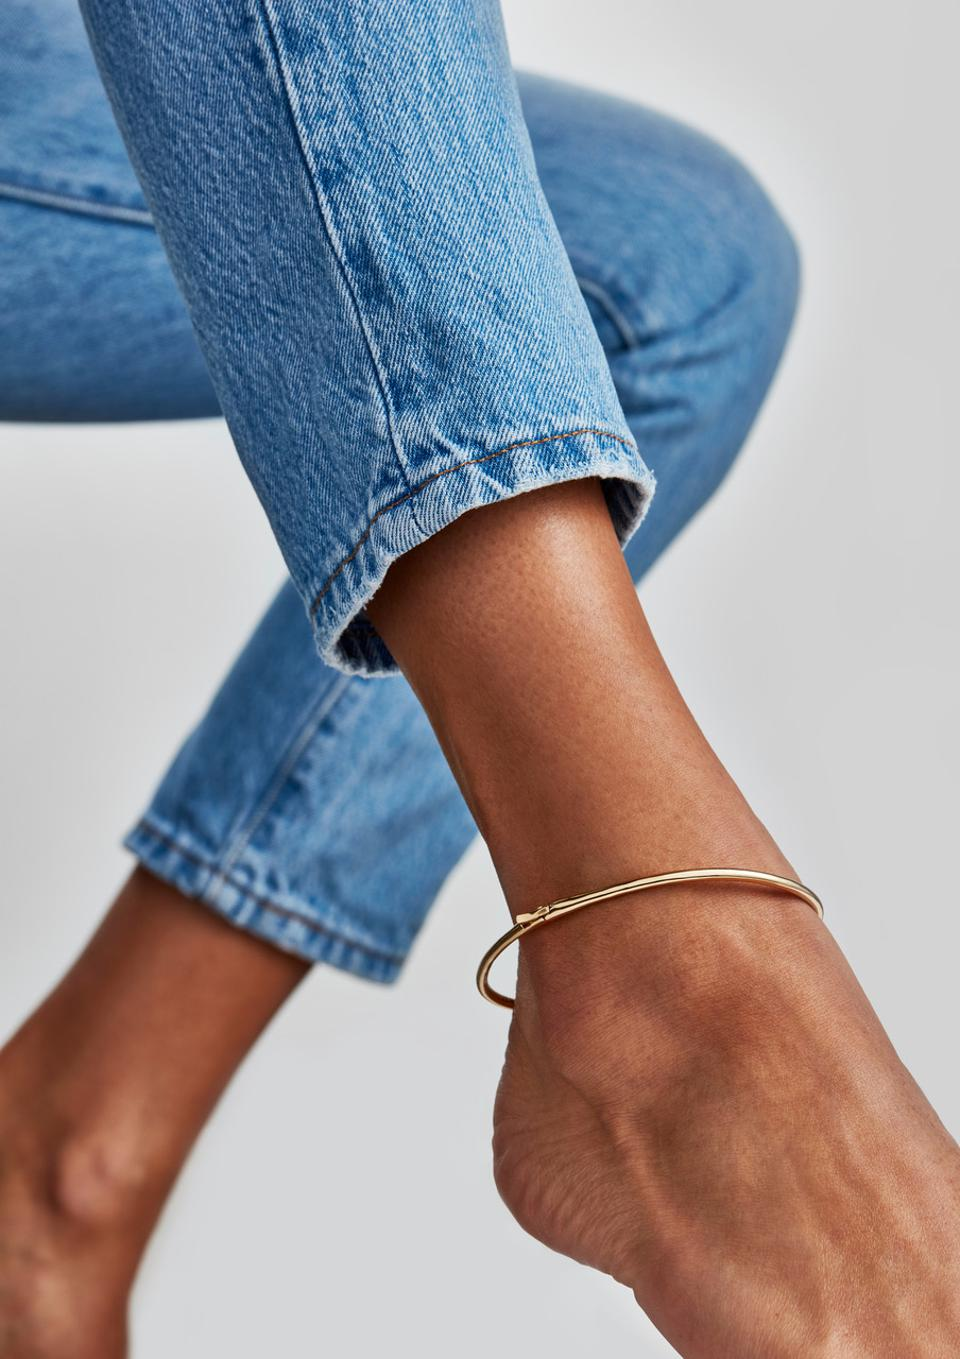 A bangle for your ankle. This structured oval anklet wraps around your ankle. Anklet opens and closes by custom fold-over hinge clasp. To open the anklet press down on the clip, ever so slightly. Dipped in 14k gold and finished in a high polish. $105